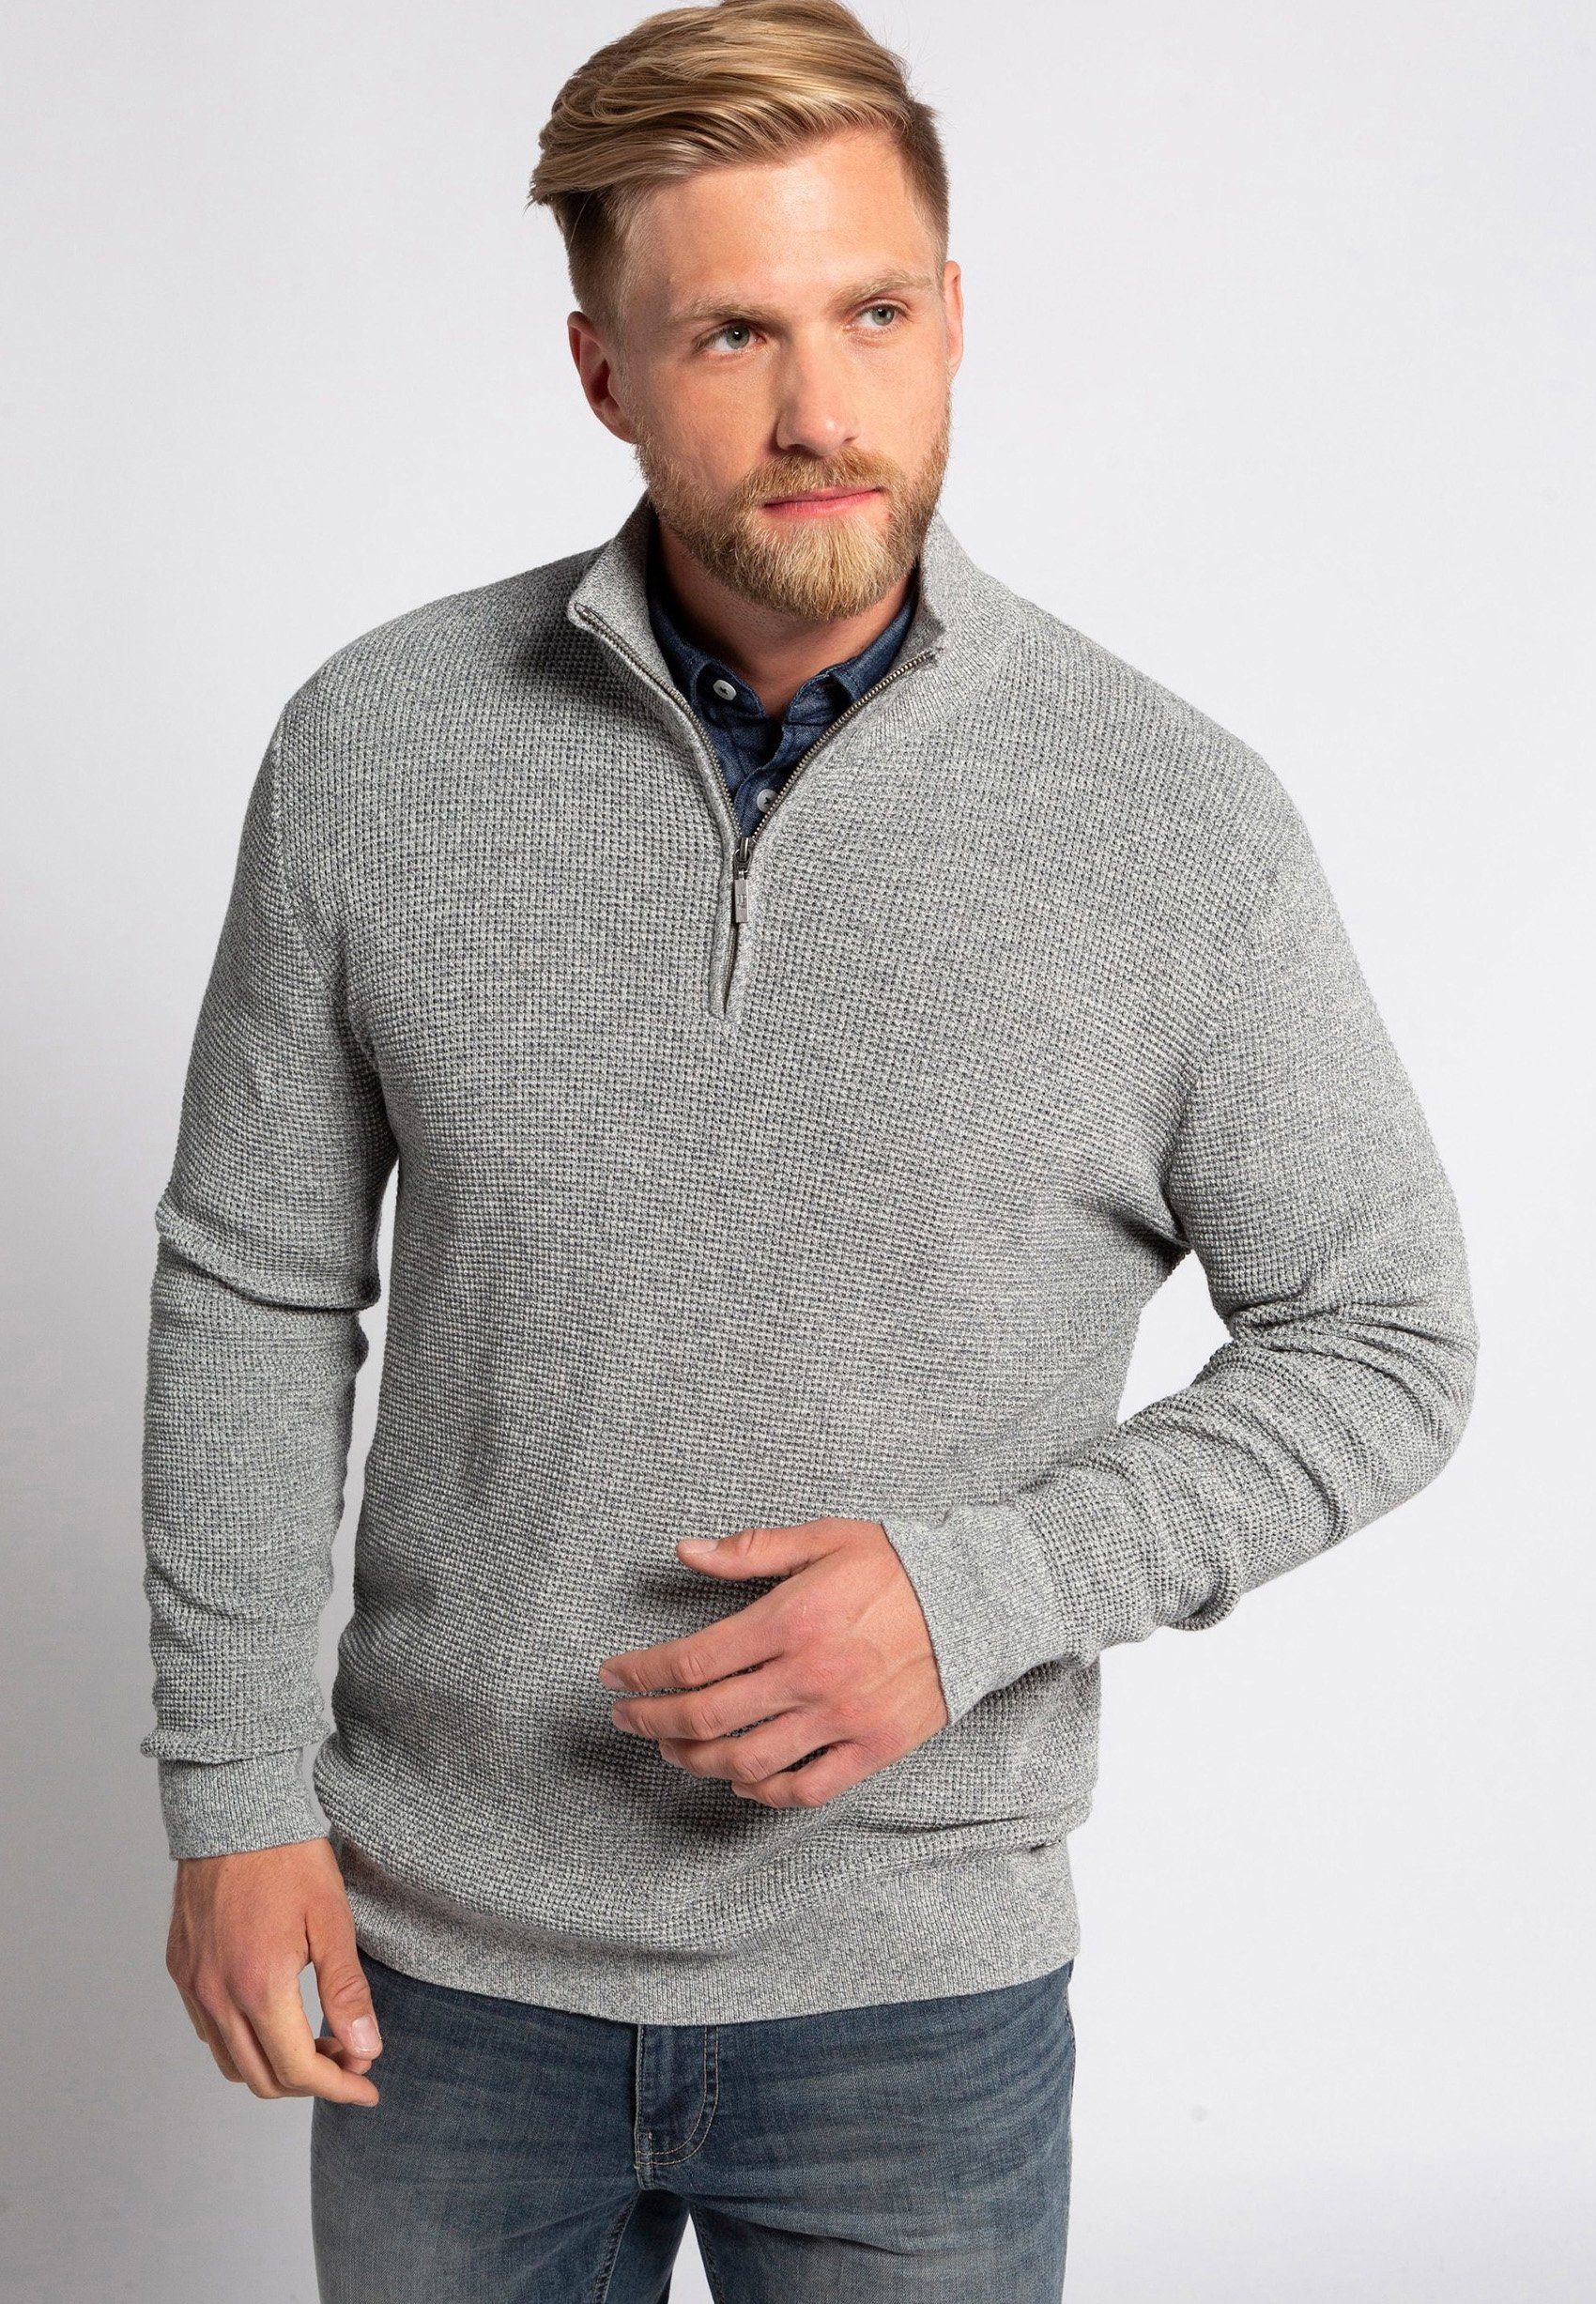 Homme GRANDES TAILLES PULL CAMIONNEUR - Pullover